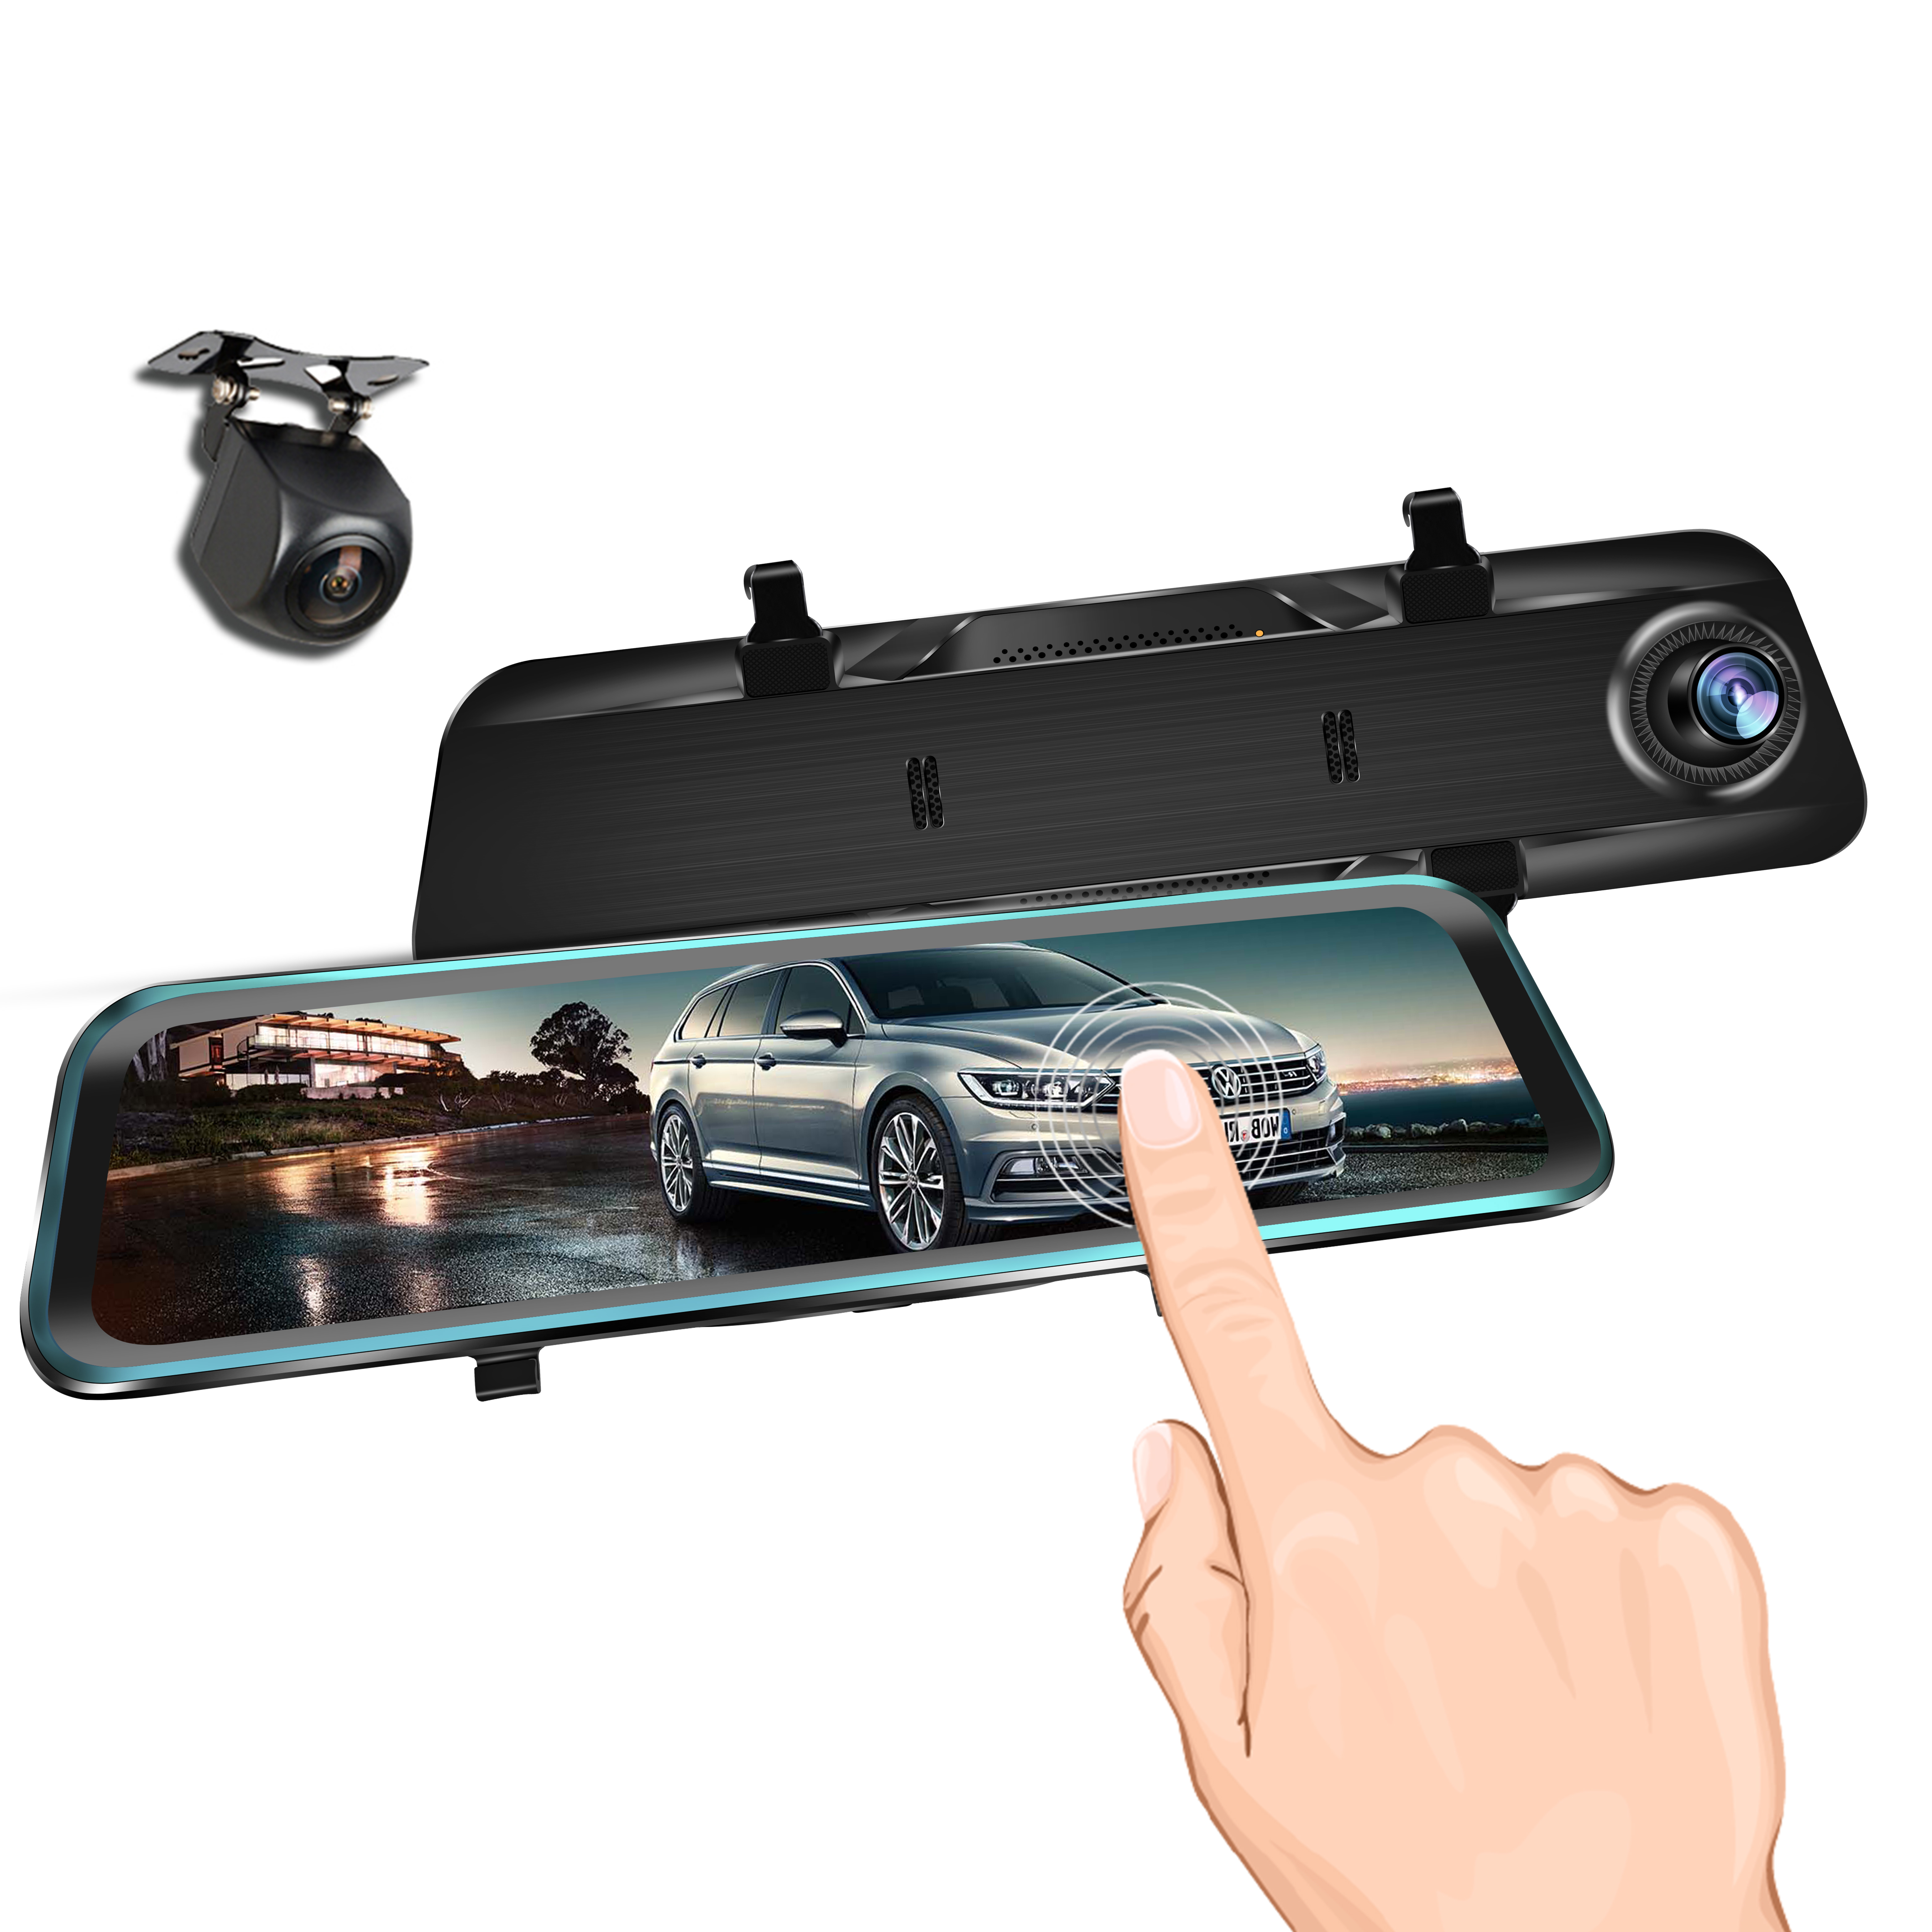 Car Dvr Full HD 1080P Stream Media RearView Mirror 12 Inch DashCam Night Vision Car Camera Dual Lens Auto Registrar Featured Image